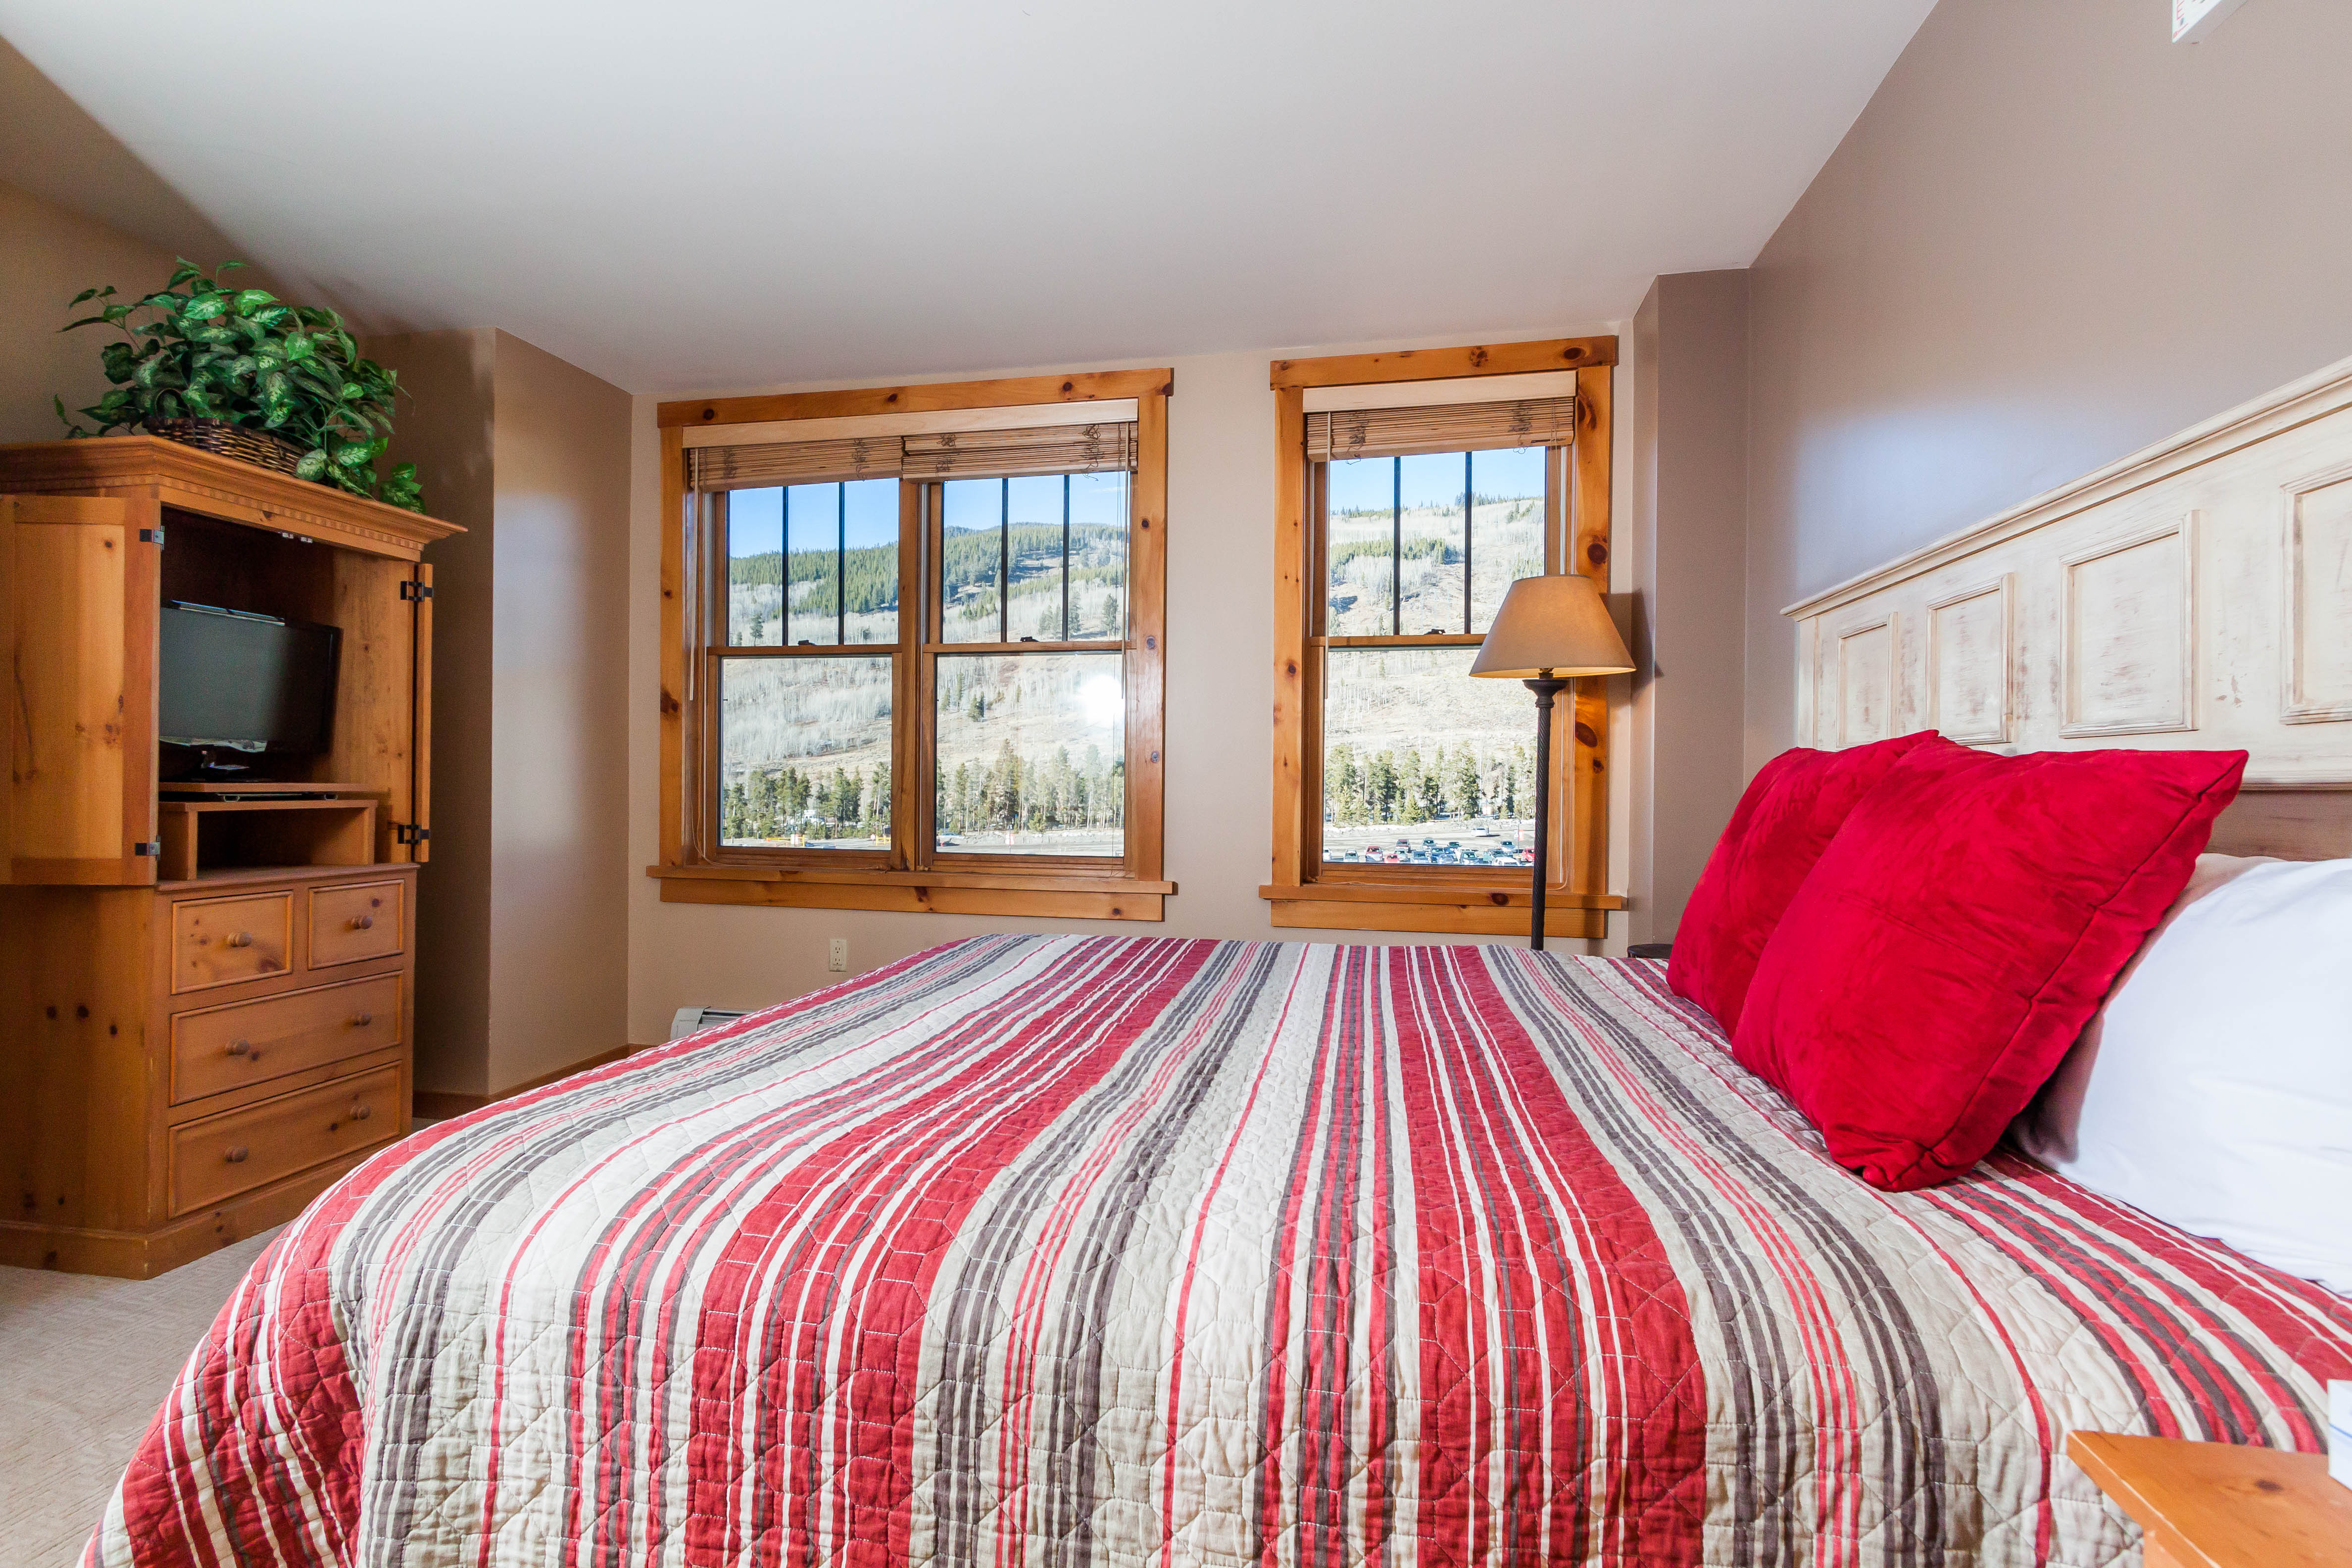 The bedroom features a king-sized bed, a flat screen TV and mountain views.